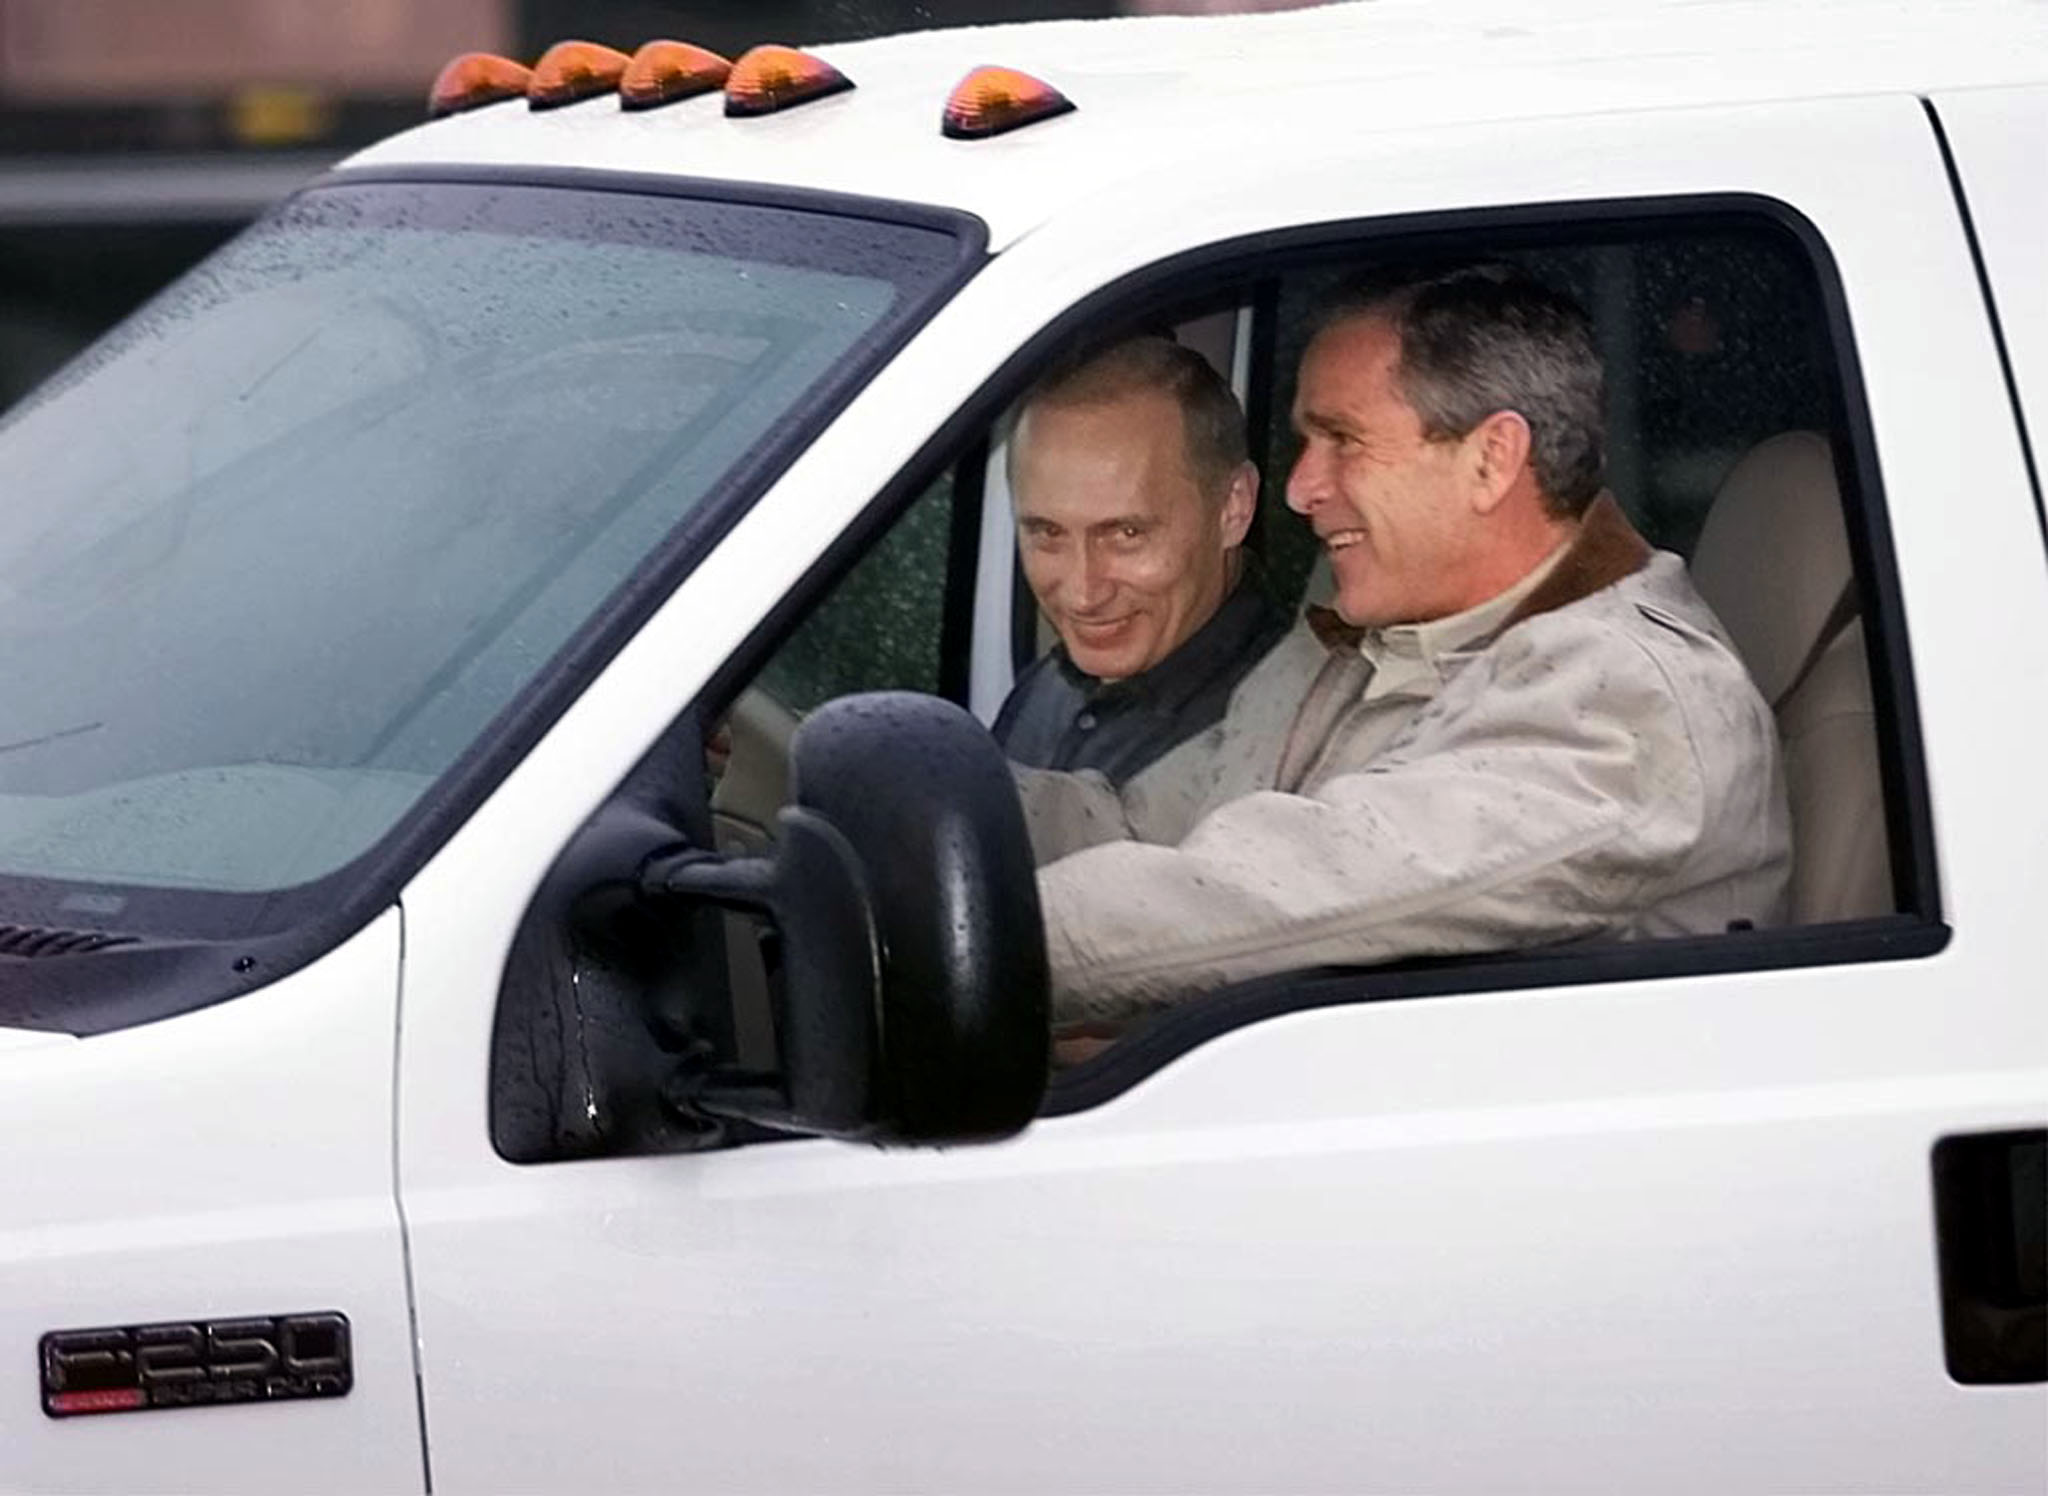 U.S. President George W. Bush rides with Russian President Vladimir Putin in the front of his pickup truck as he welcomes Putin to his ranch in Crawford, Texas November 14, 2001. [Bush plans to treat Putin to Western-style entertainment and tour of his beloved ranch, as well as follow up on their talks in Washington on Tuesday on a new strategic relationship. ] Win McNamee / Reuters.